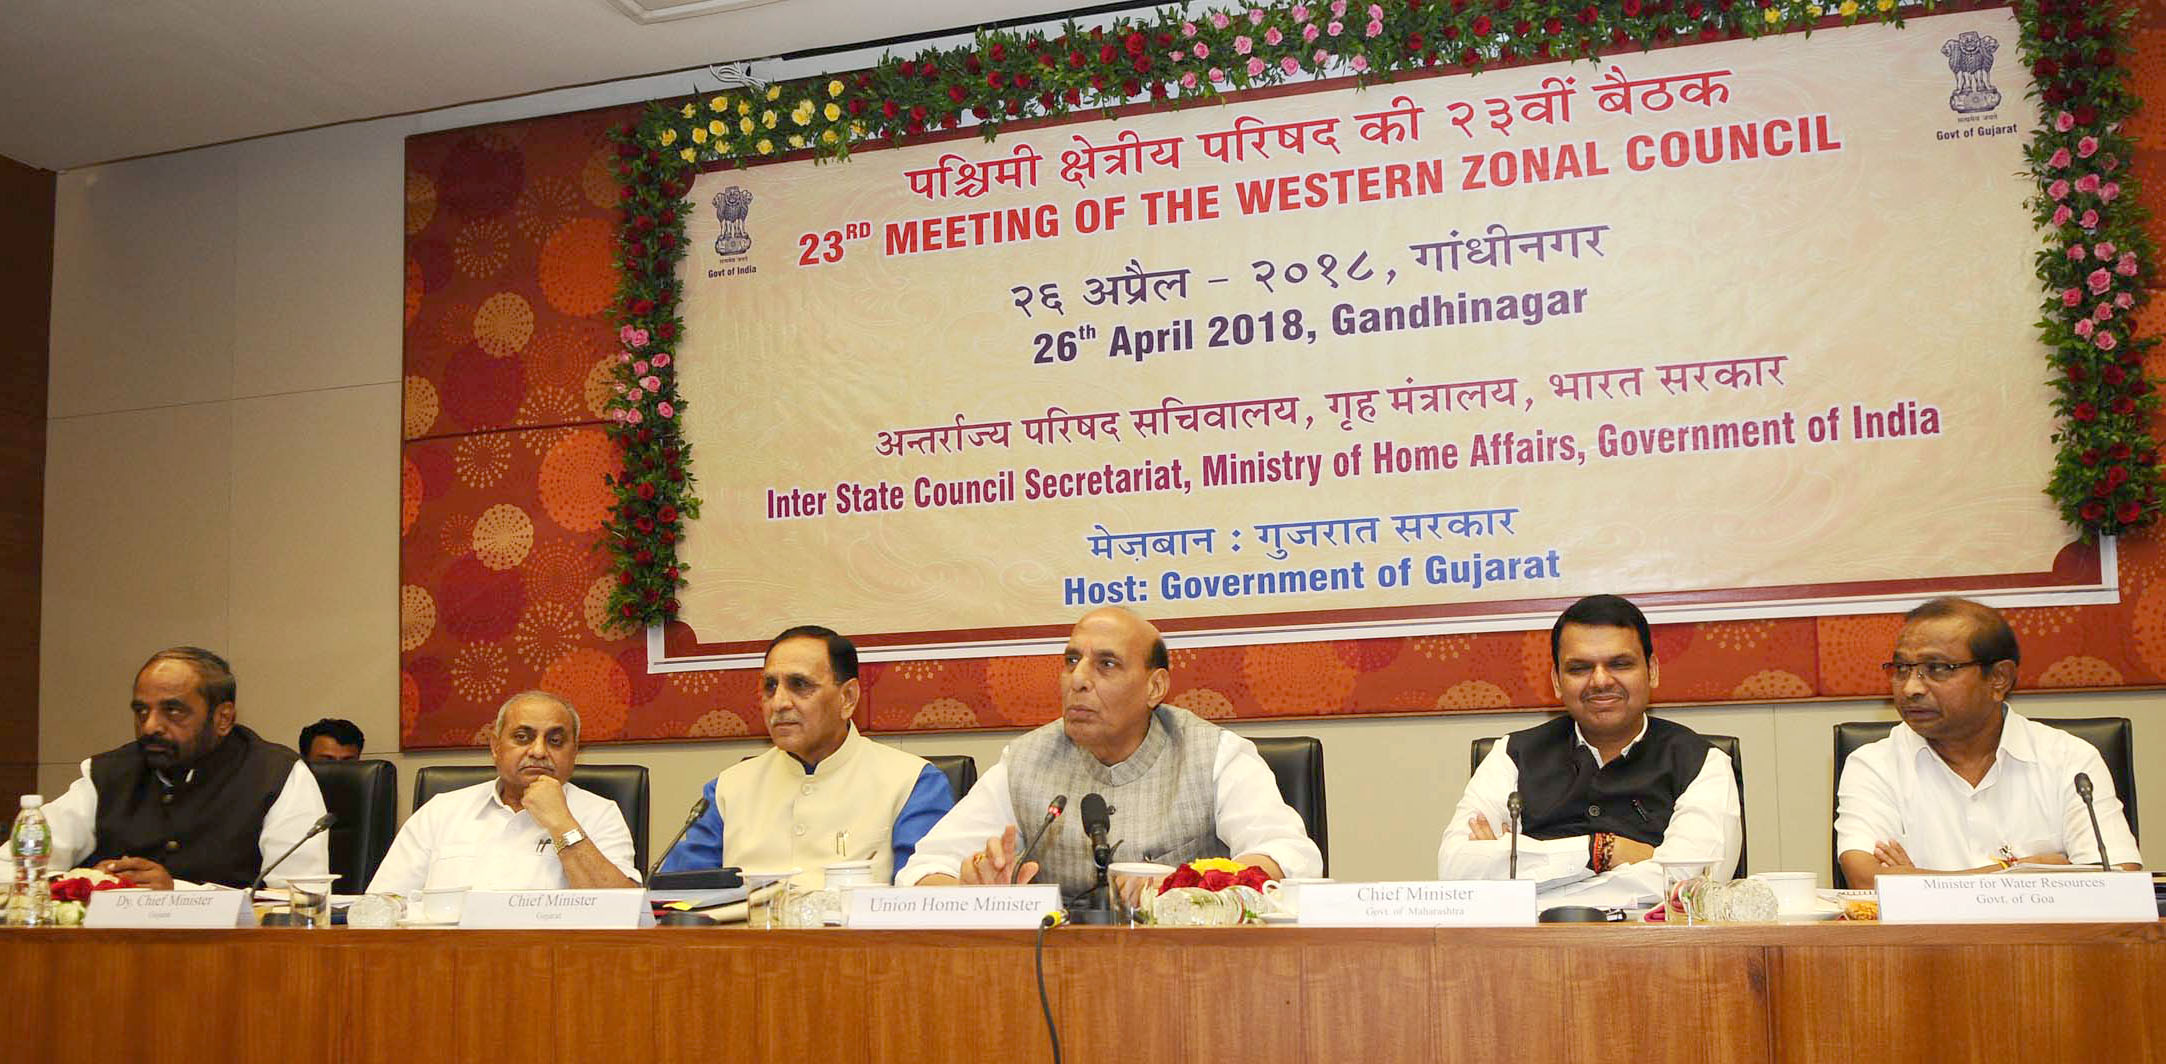 The Union Home Minister, Shri Rajnath Singh chairing the 23rd meeting of the Western Zonal Council, at Gandhinagar, Gujarat on April 26, 2018. The Chief Minister of Gujarat, Shri Vijay Rupani, the Chief Minister of Maharashtra, Shri Devendra Fadnavis, the Minister of State for Home Affairs, Shri Hansraj Gangaram Ahir and the Deputy Chief Minister of Gujarat, Shri Nitinbhai Patel are also seen.